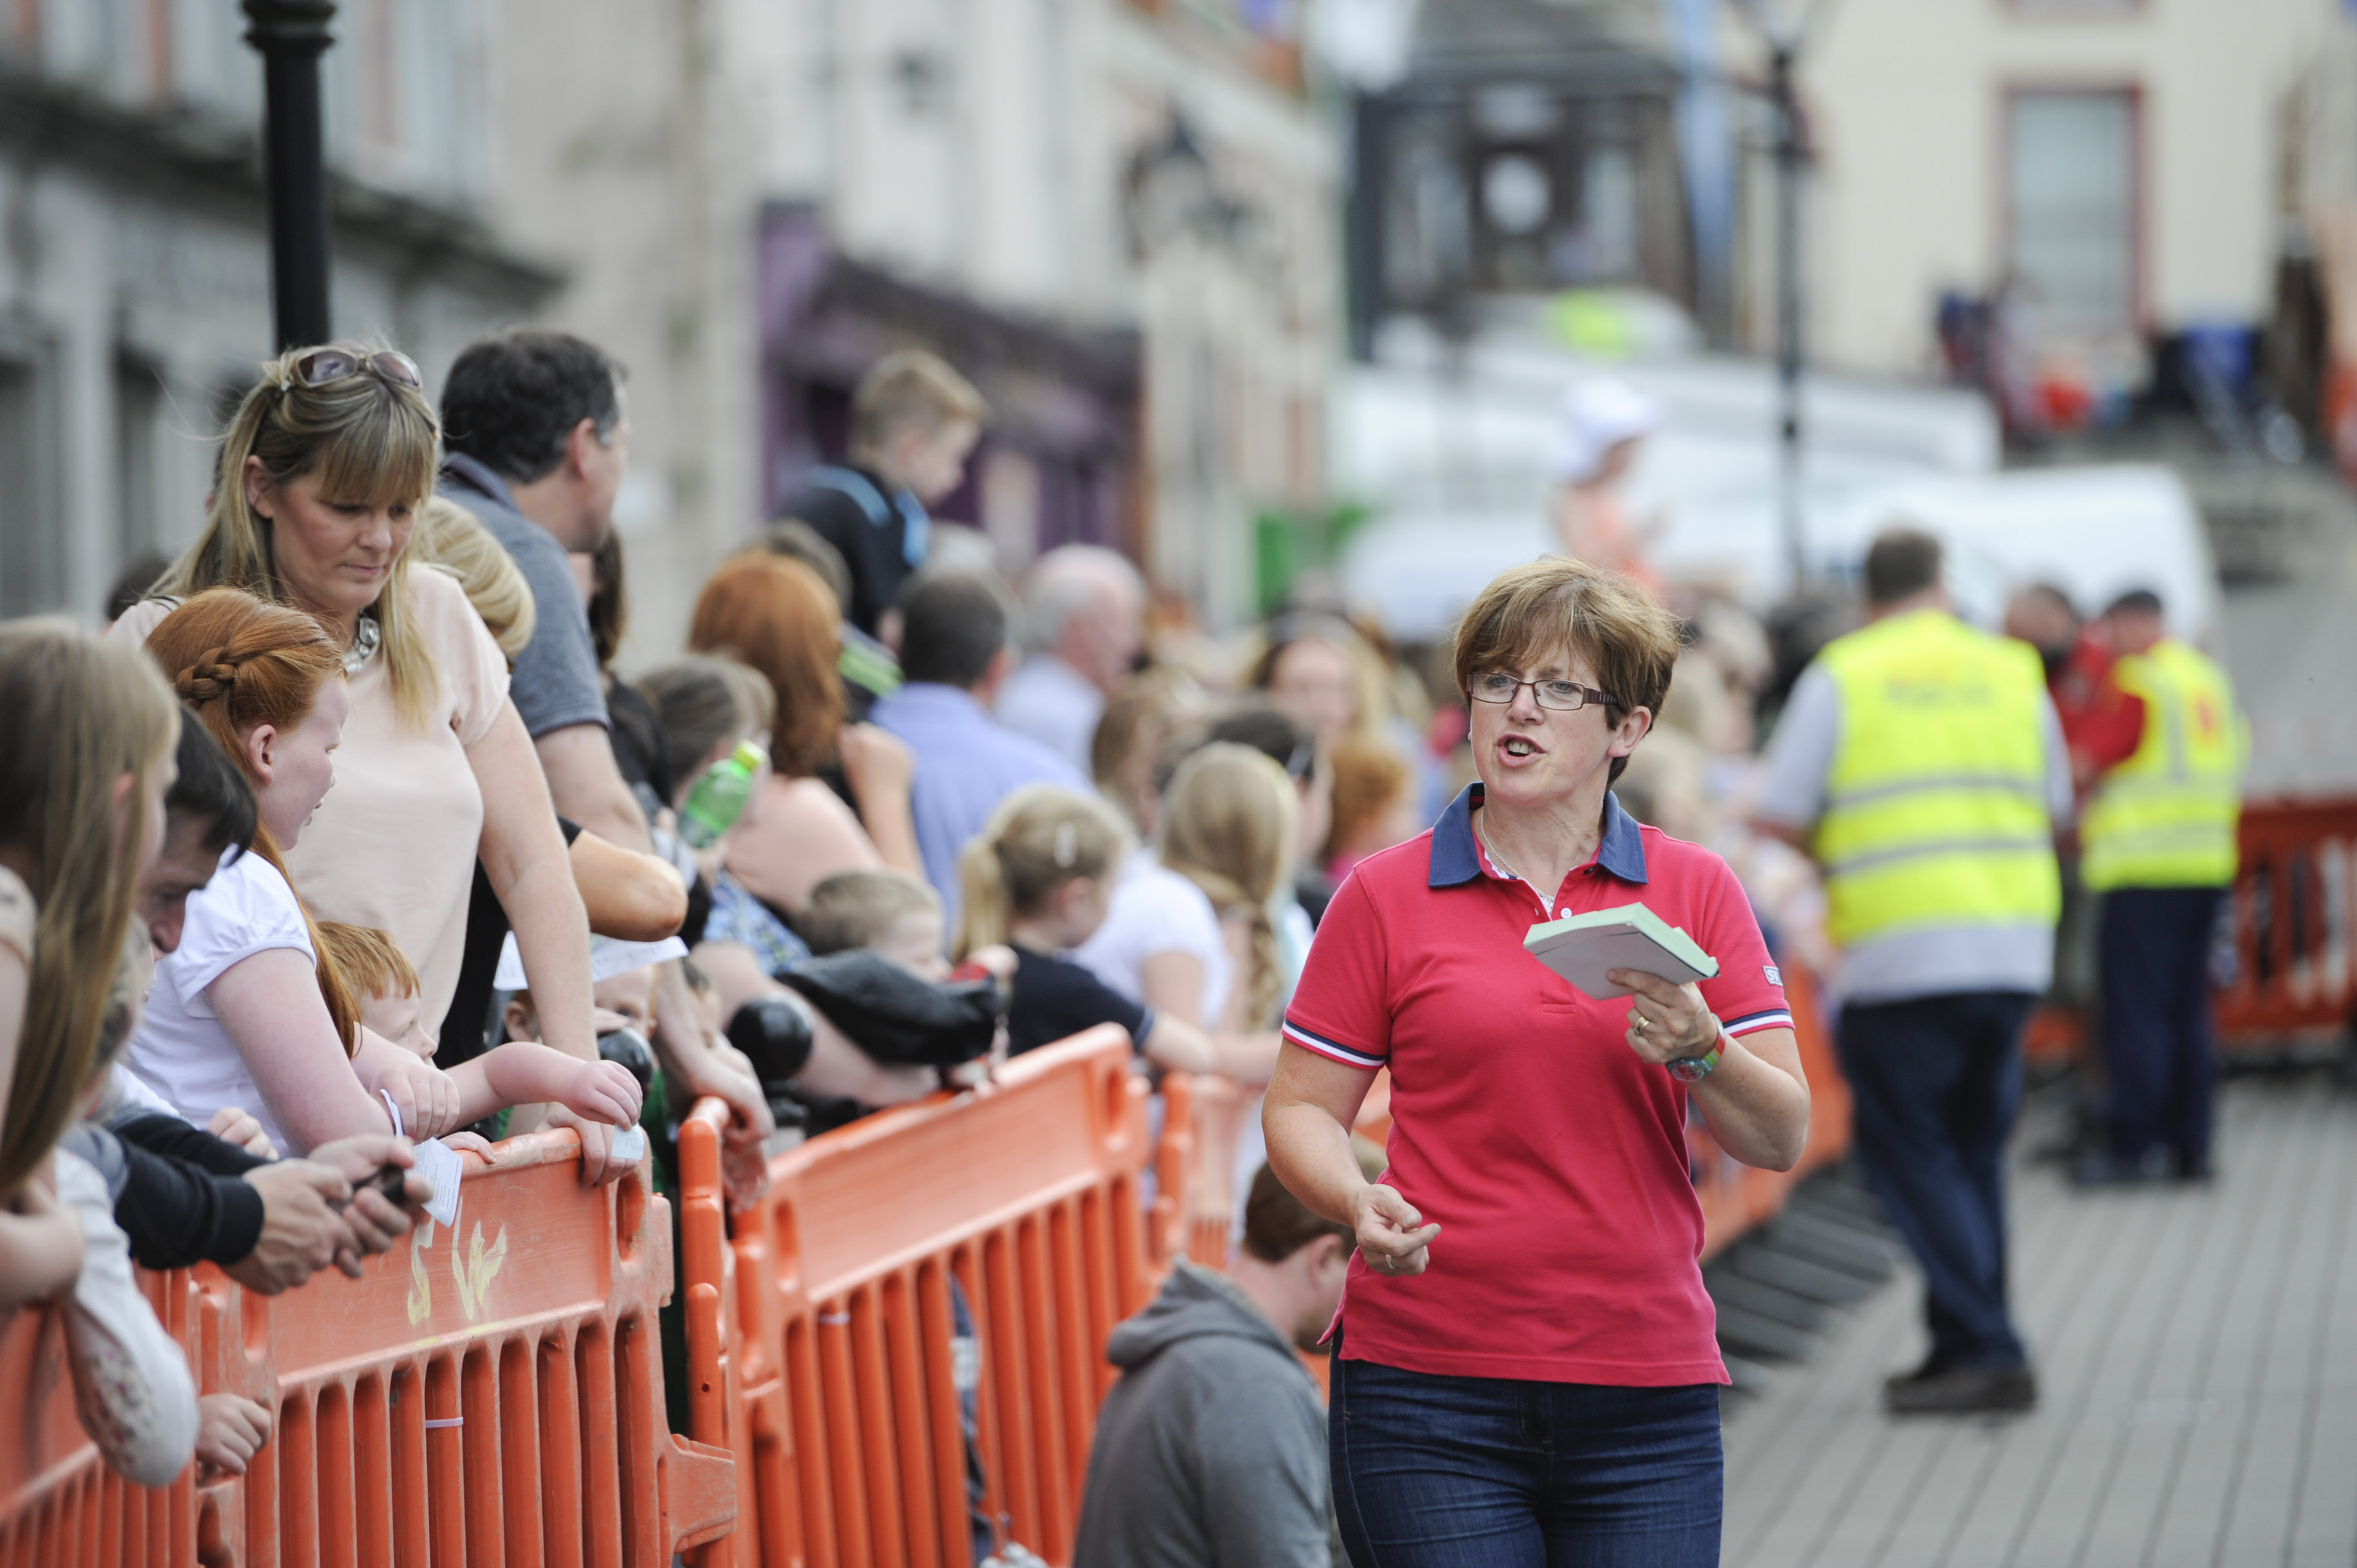 Joanne rehill selling tickets at the pig racing event. ©Rory Geary/The Northern Standard